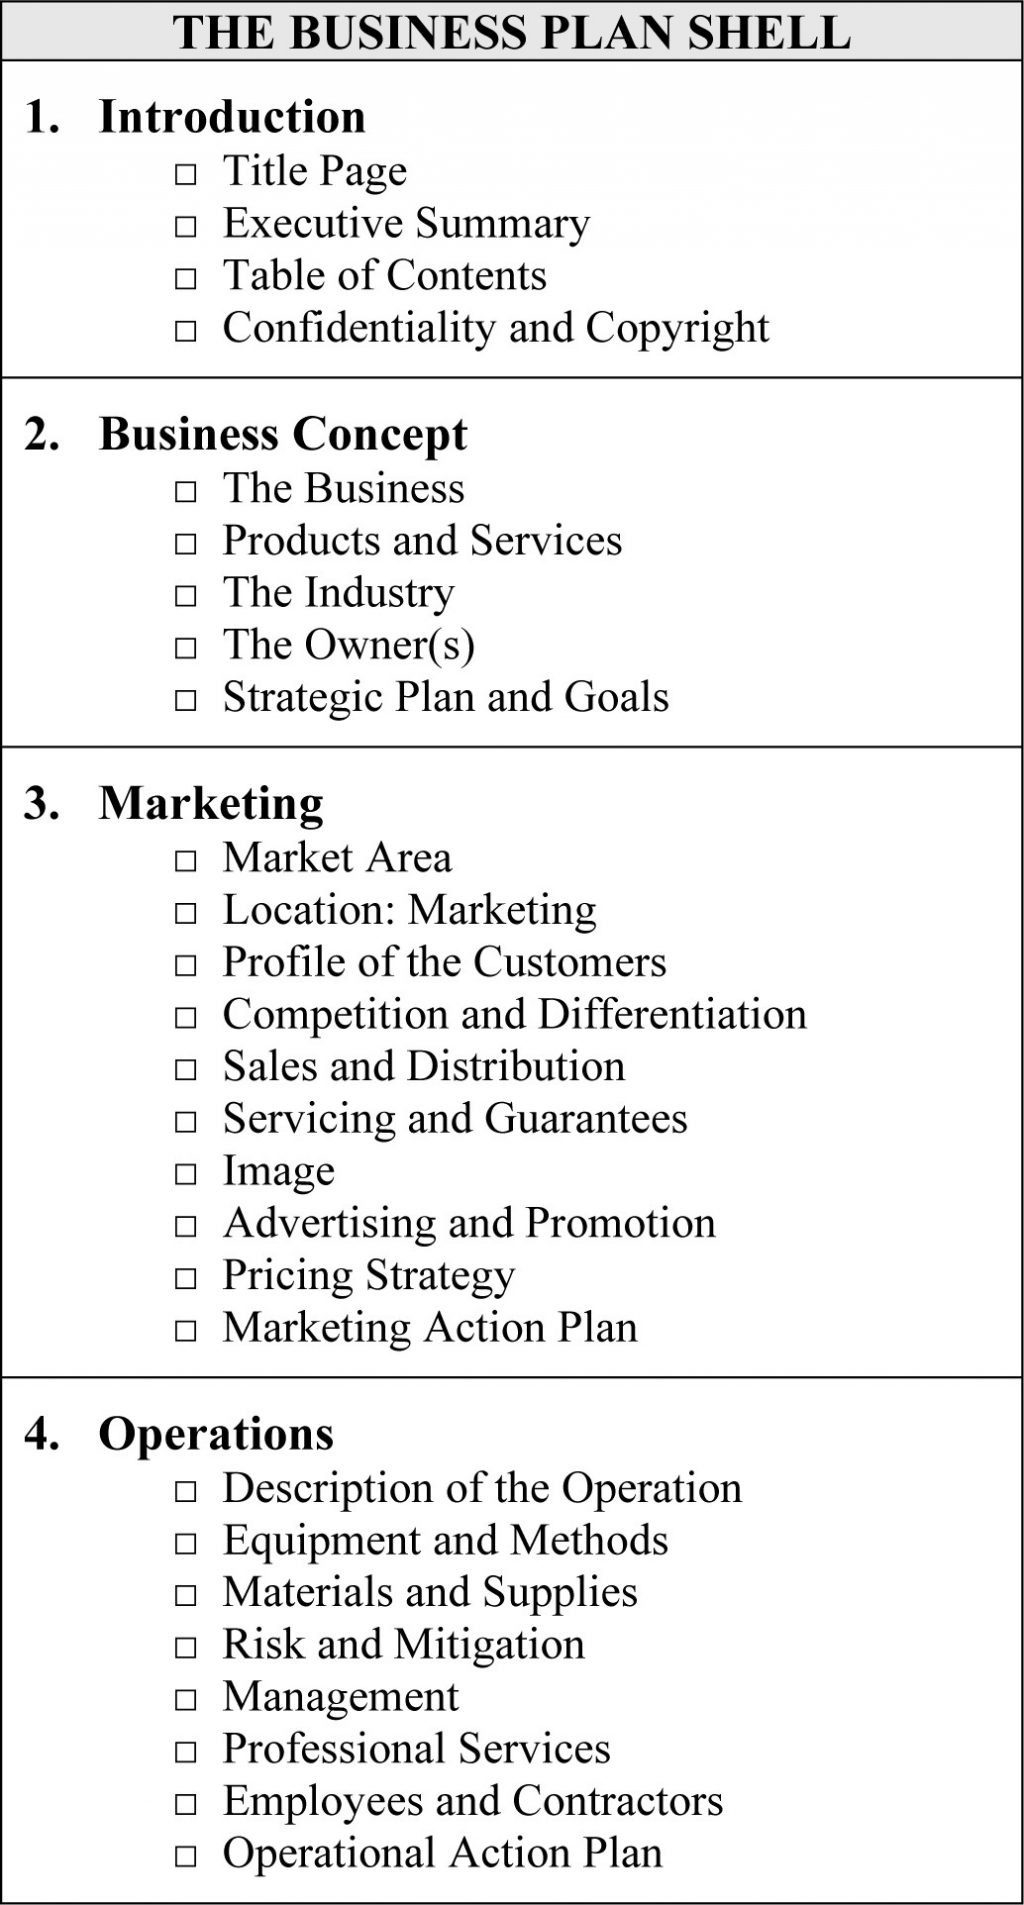 Commercial Real Estate Business Plan Template Valid Property Throughout Property Development Business Plan Template Free